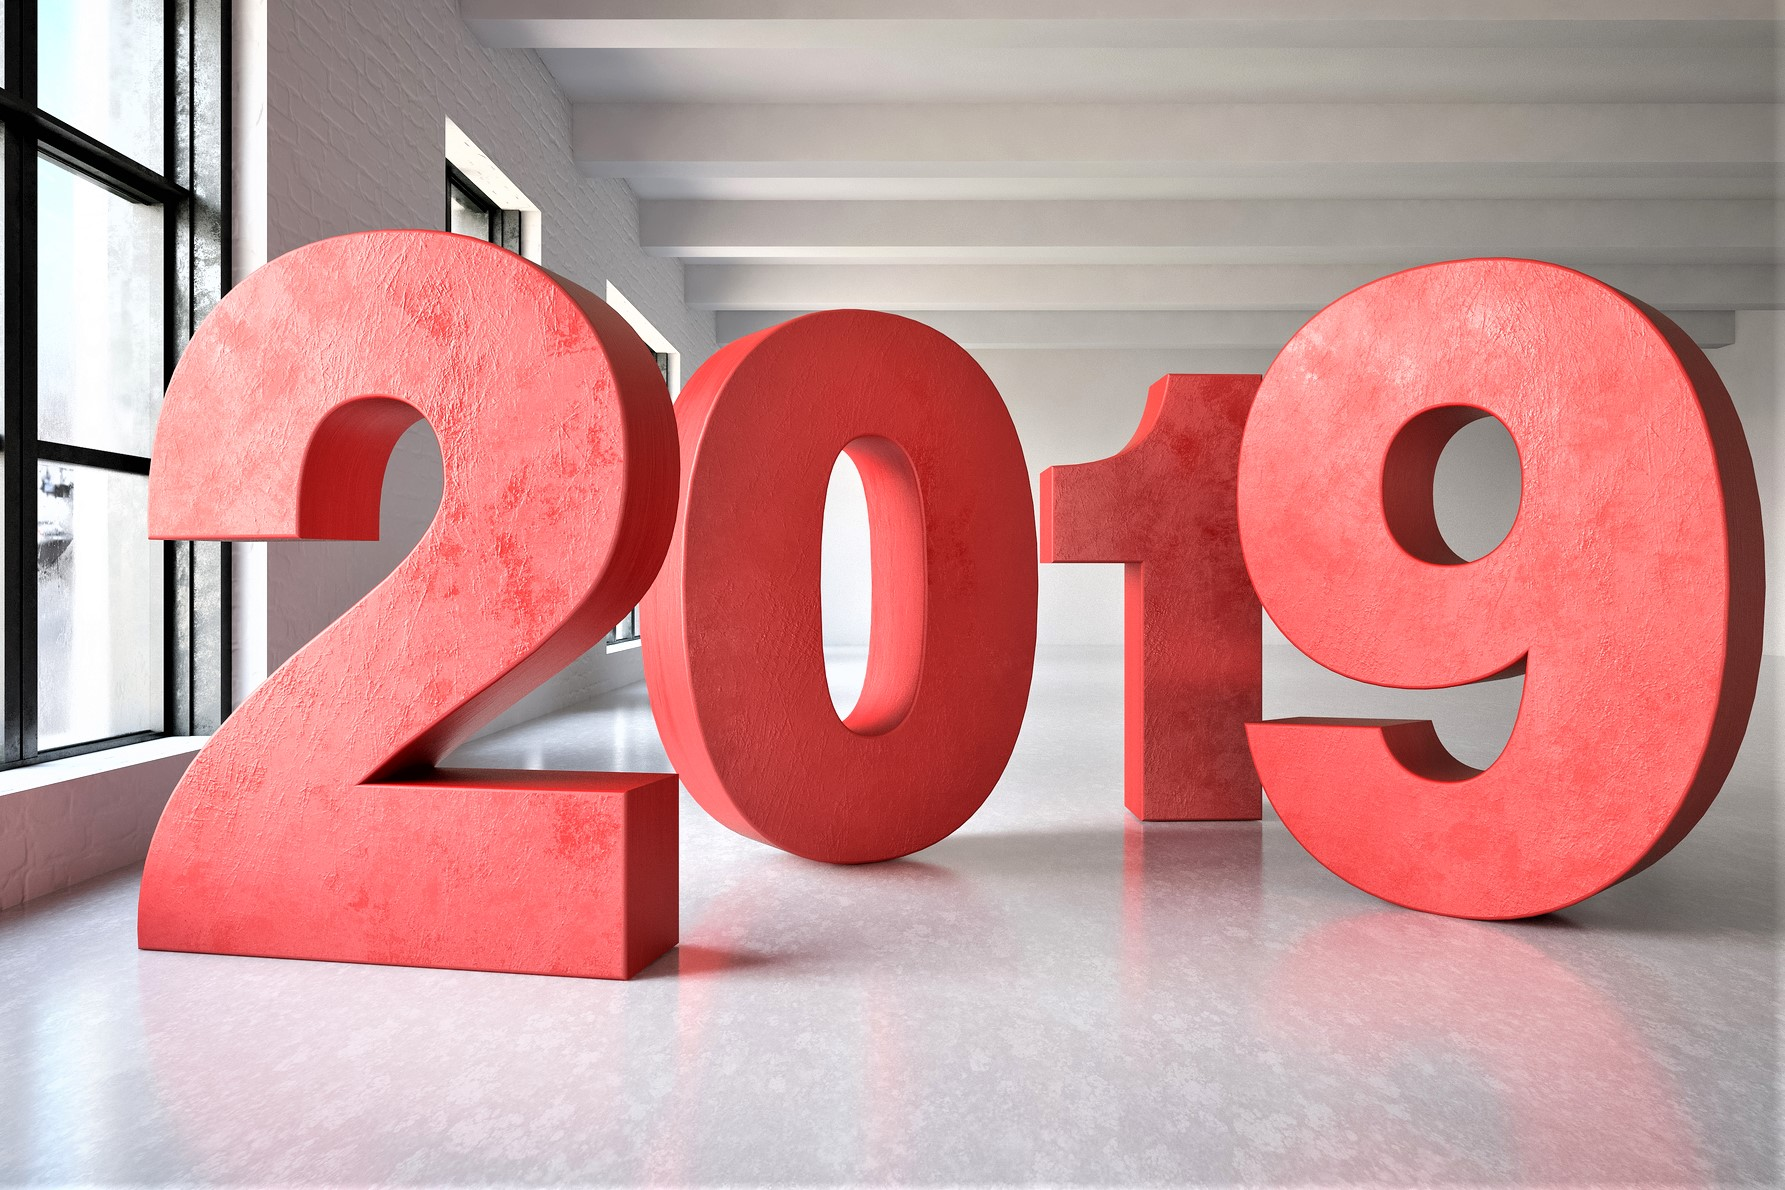 Crypto in 2019: Security Tokens, 'Big Finance' and Project Launches